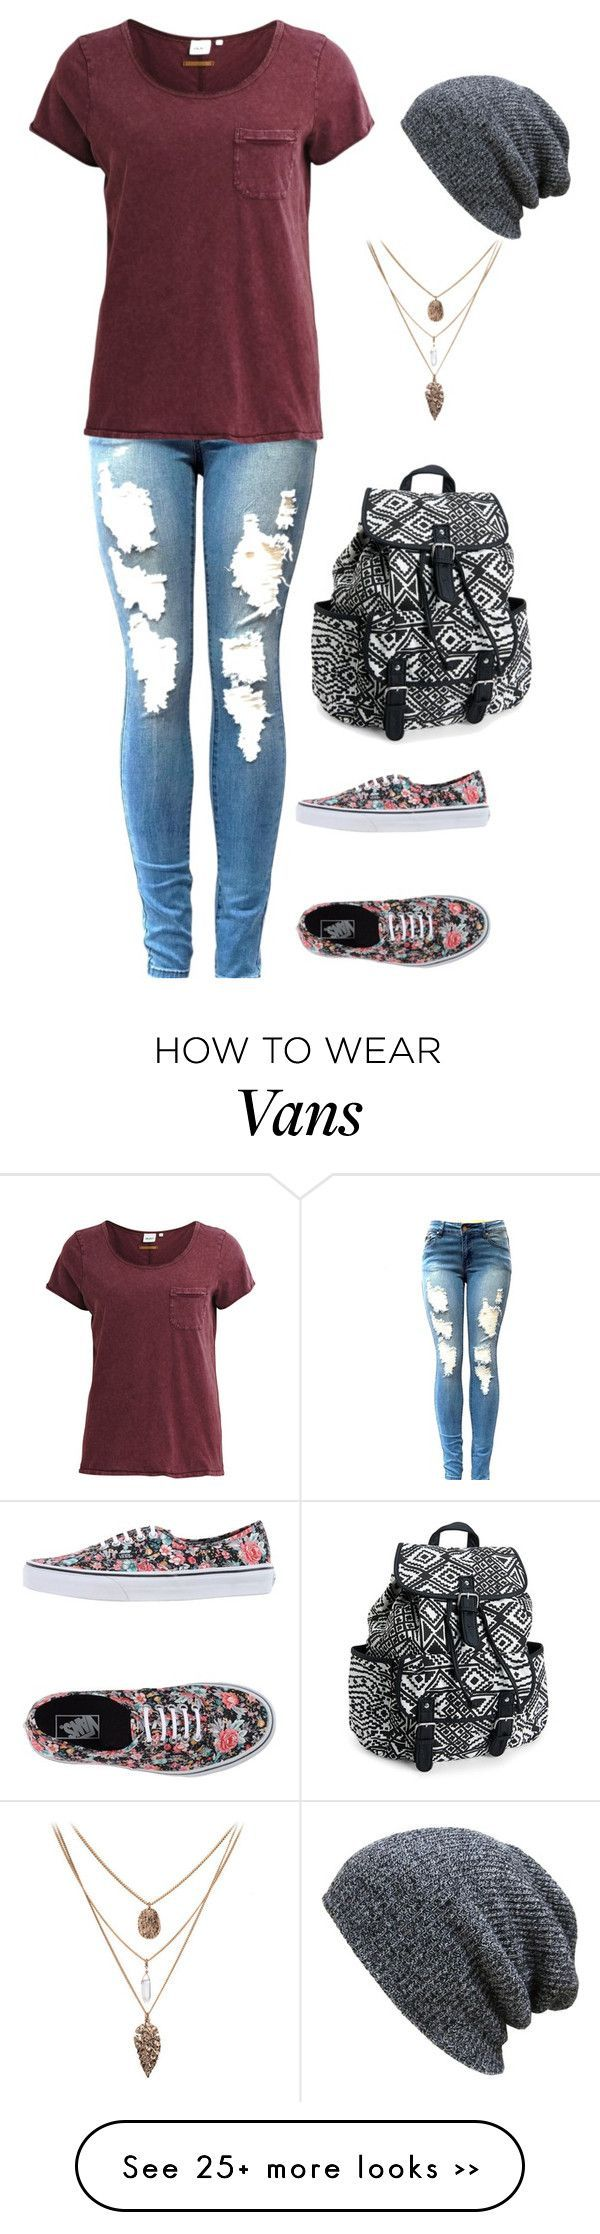 awesome Vans Sets by http://www.redfashiontrends.us/teen-fashion/vans-sets/